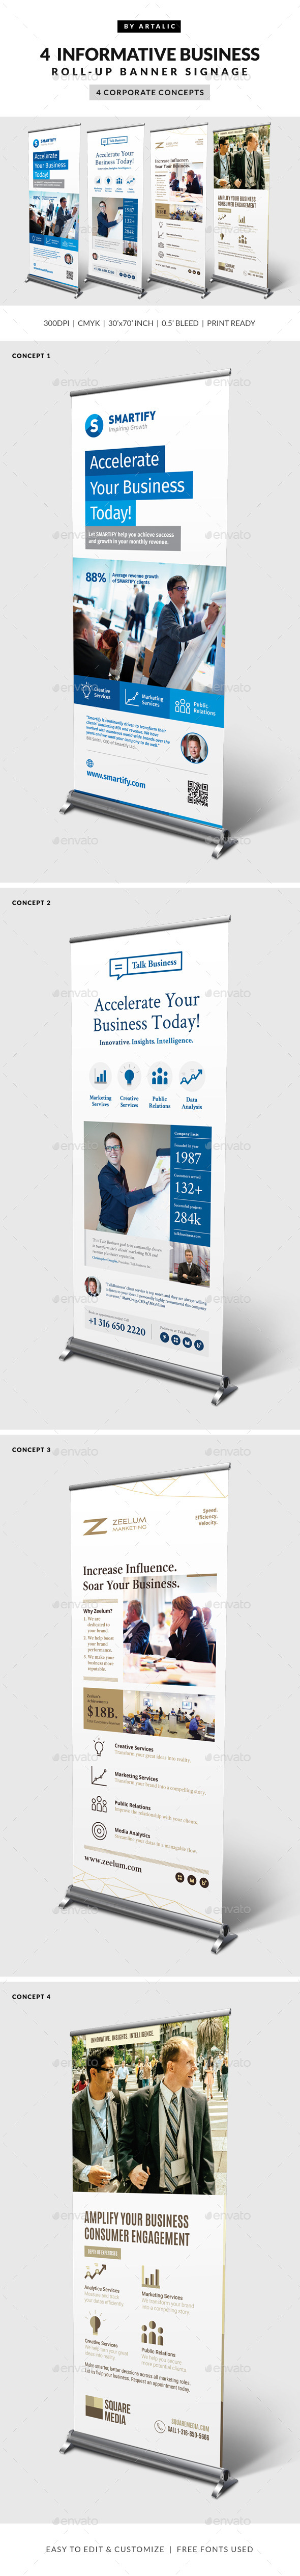 GraphicRiver 4 Corporate Business Roll-up Banners 10841256